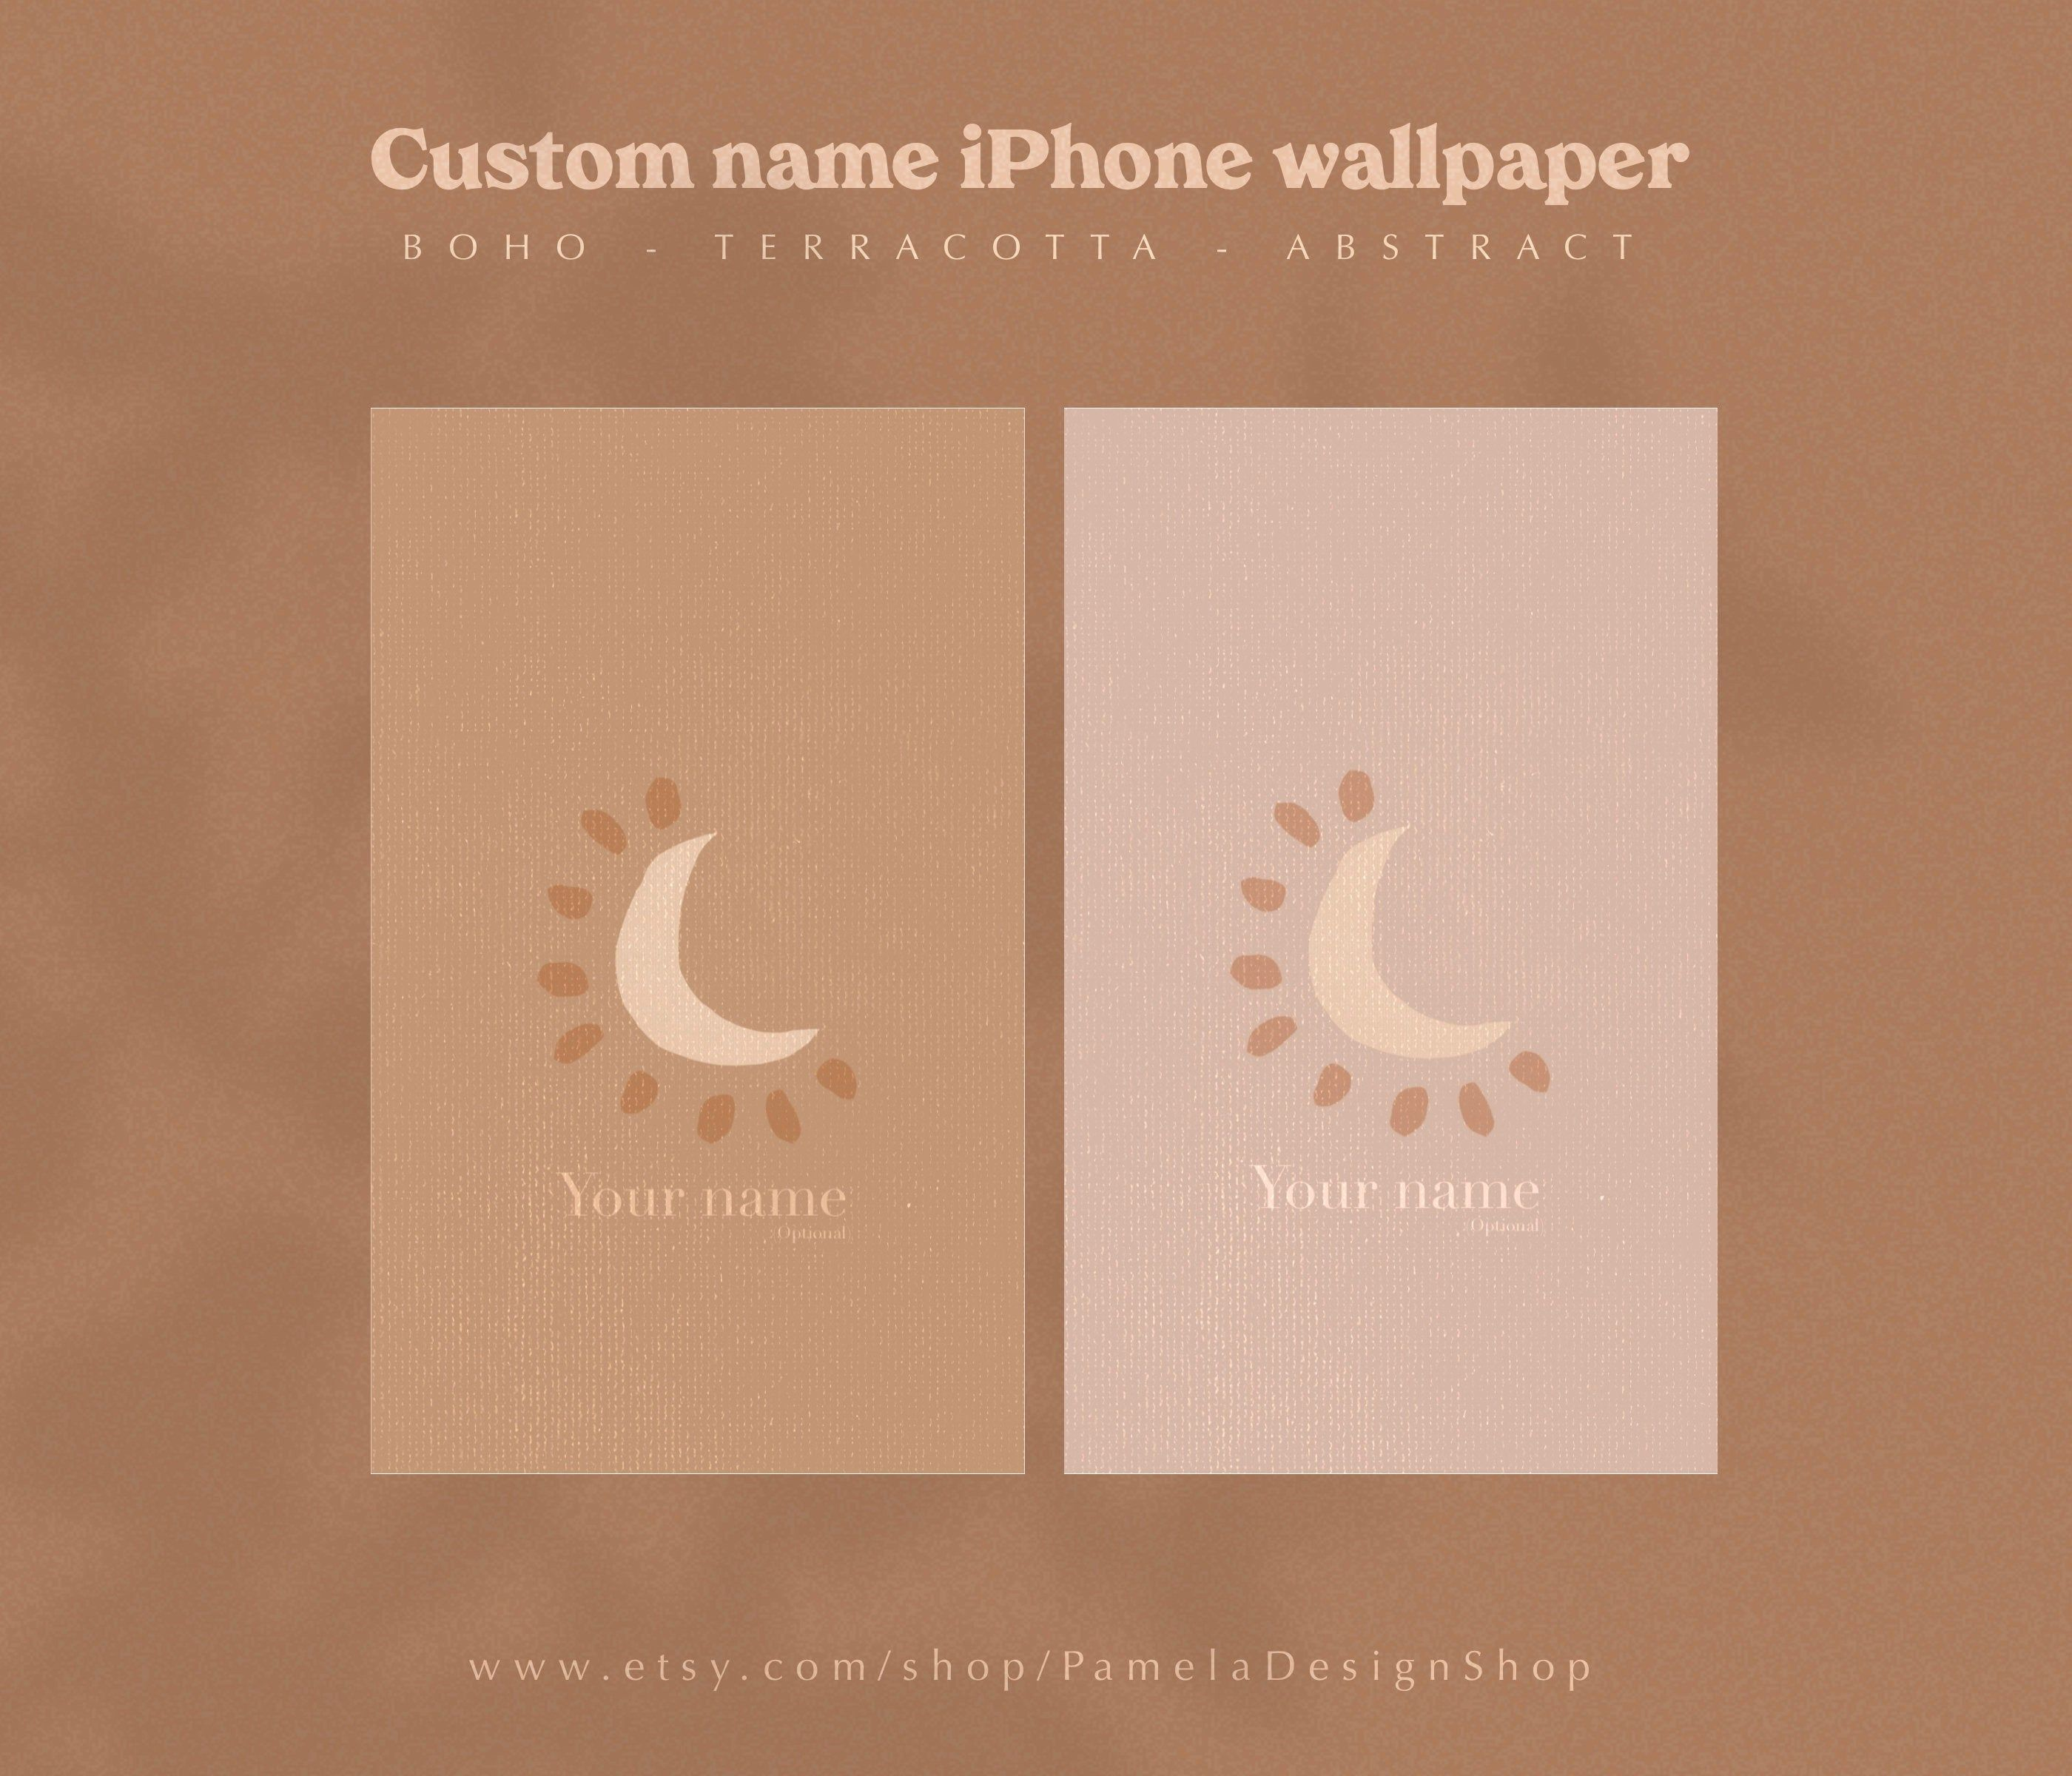 2 iPhone wallpapers WITH YOUR NAME Abstract Boho